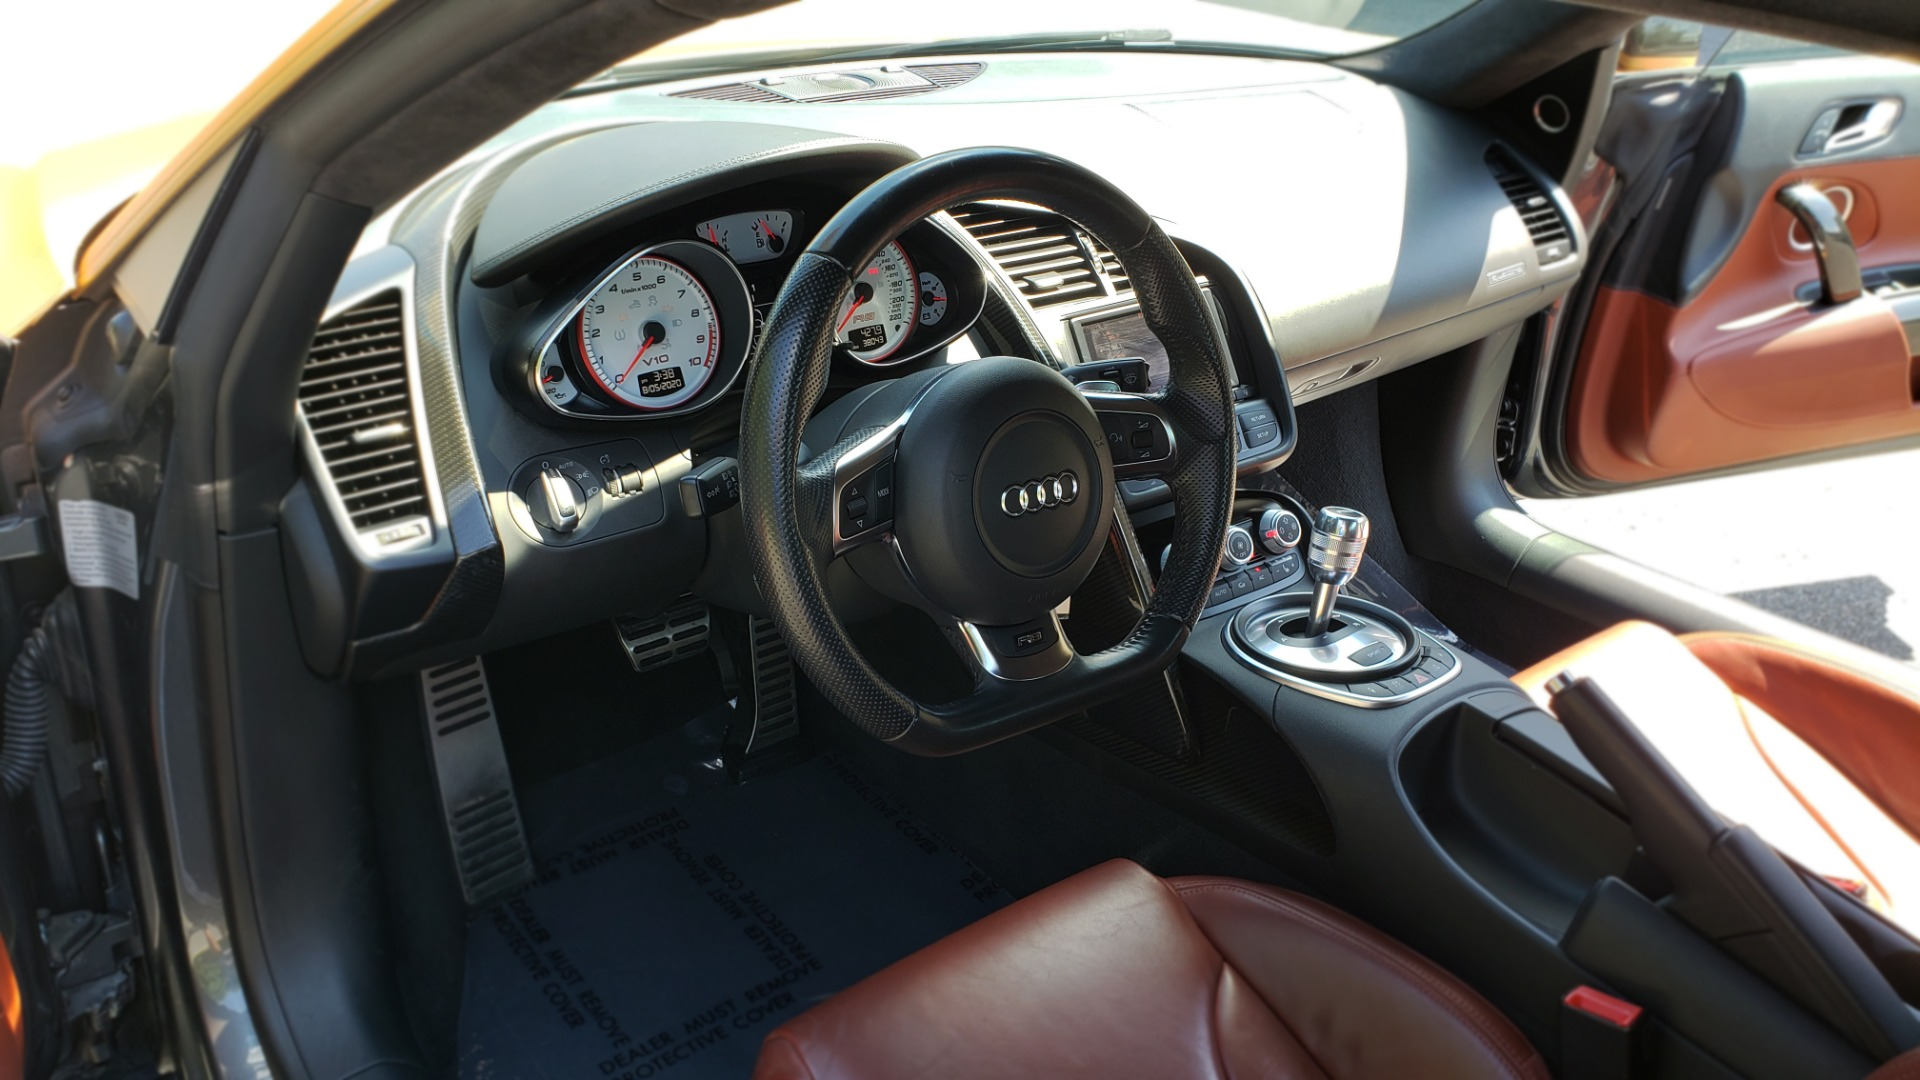 Used 2012 Audi R8 5.2L V10 / AWD / COUPE / NAV / 6-SPD AUTO / CUSTOM WRAP for sale Sold at Formula Imports in Charlotte NC 28227 27